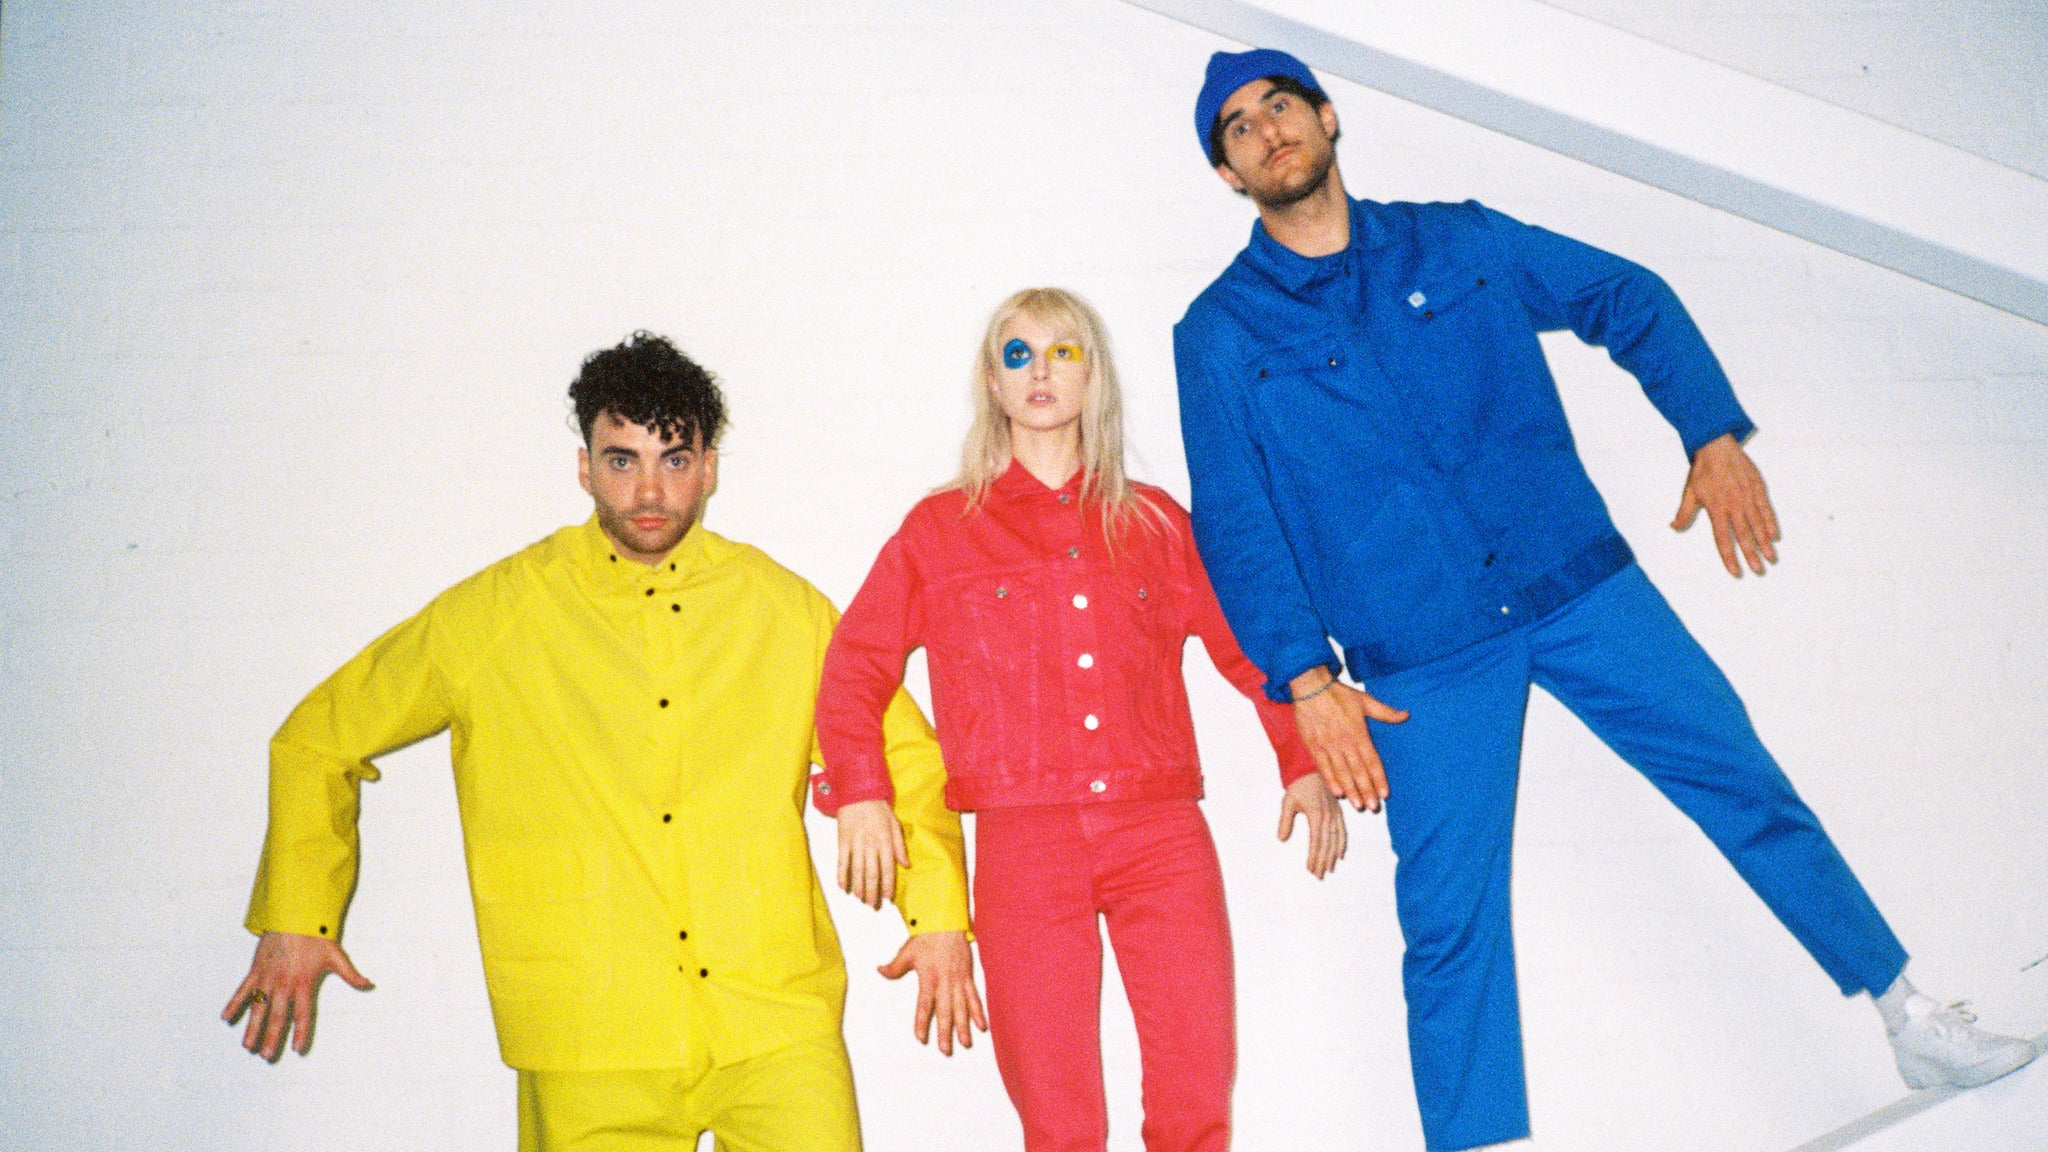 Paramore - Tour Two at Verizon Theatre At Grand Prairie - Grand Prairie, TX 75050